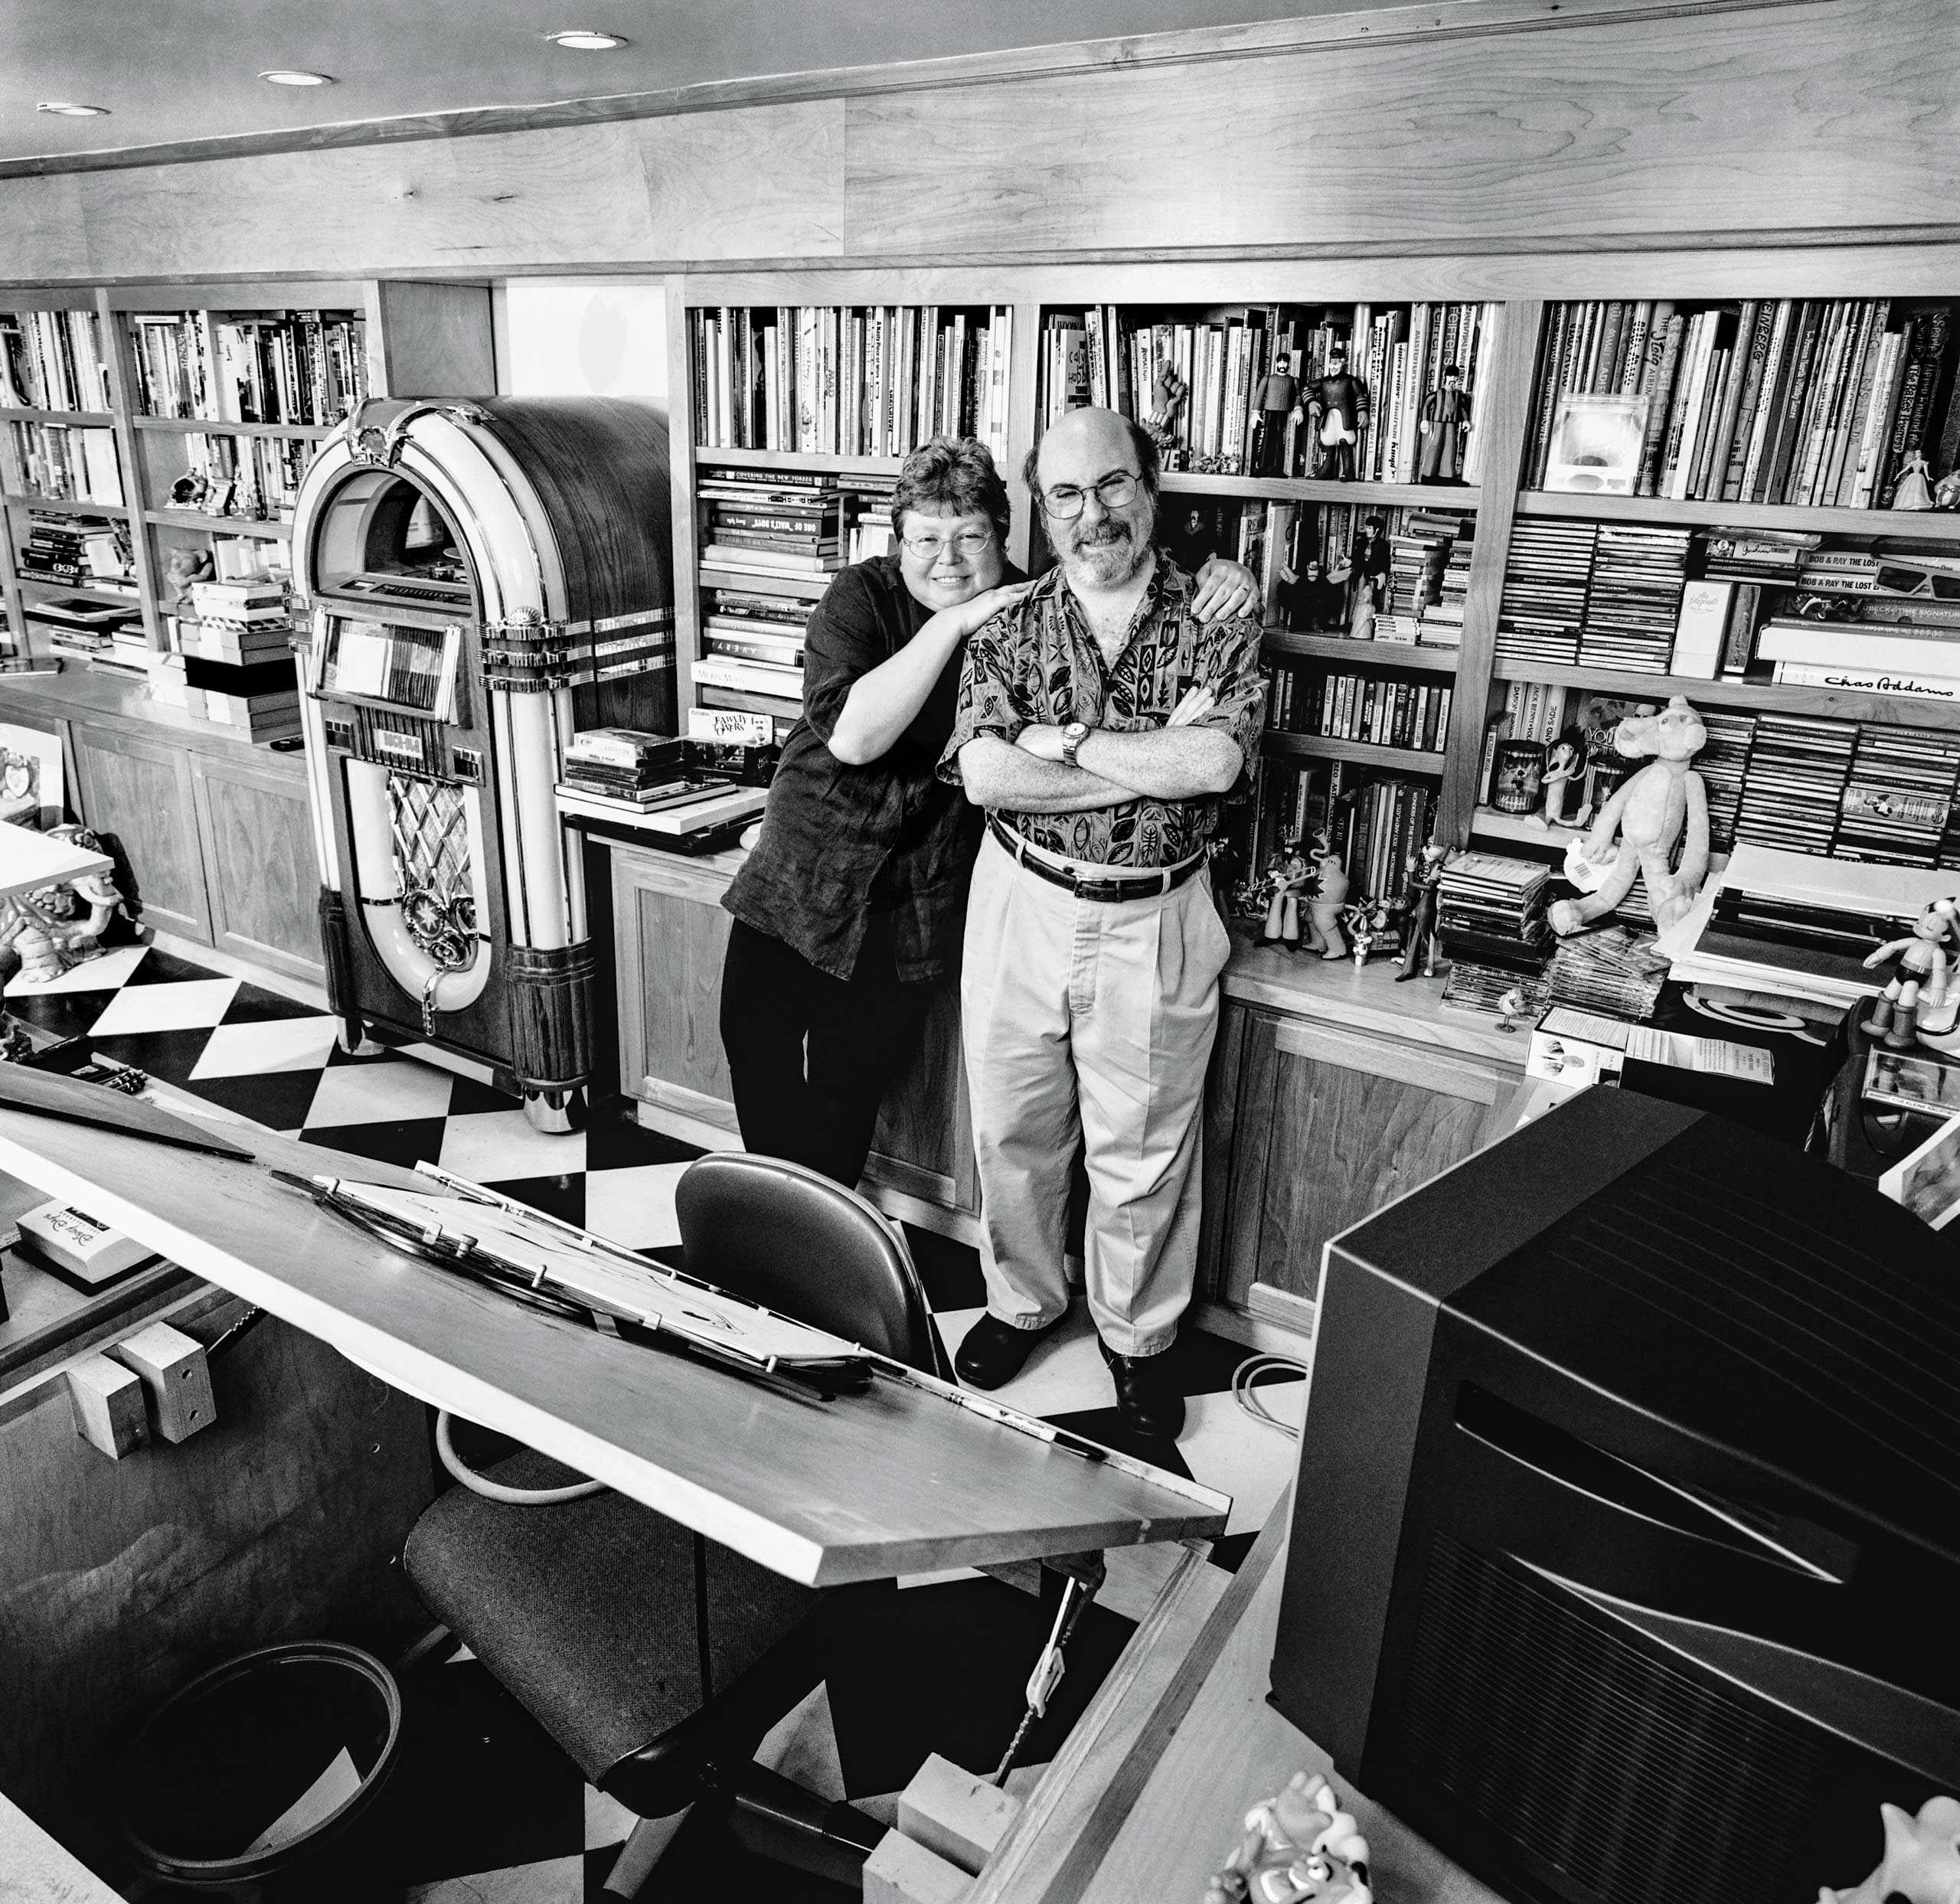 """Animators Eric and Susan Goldberg, photographed in their home studio for """"The Artist Within"""" Book 1"""